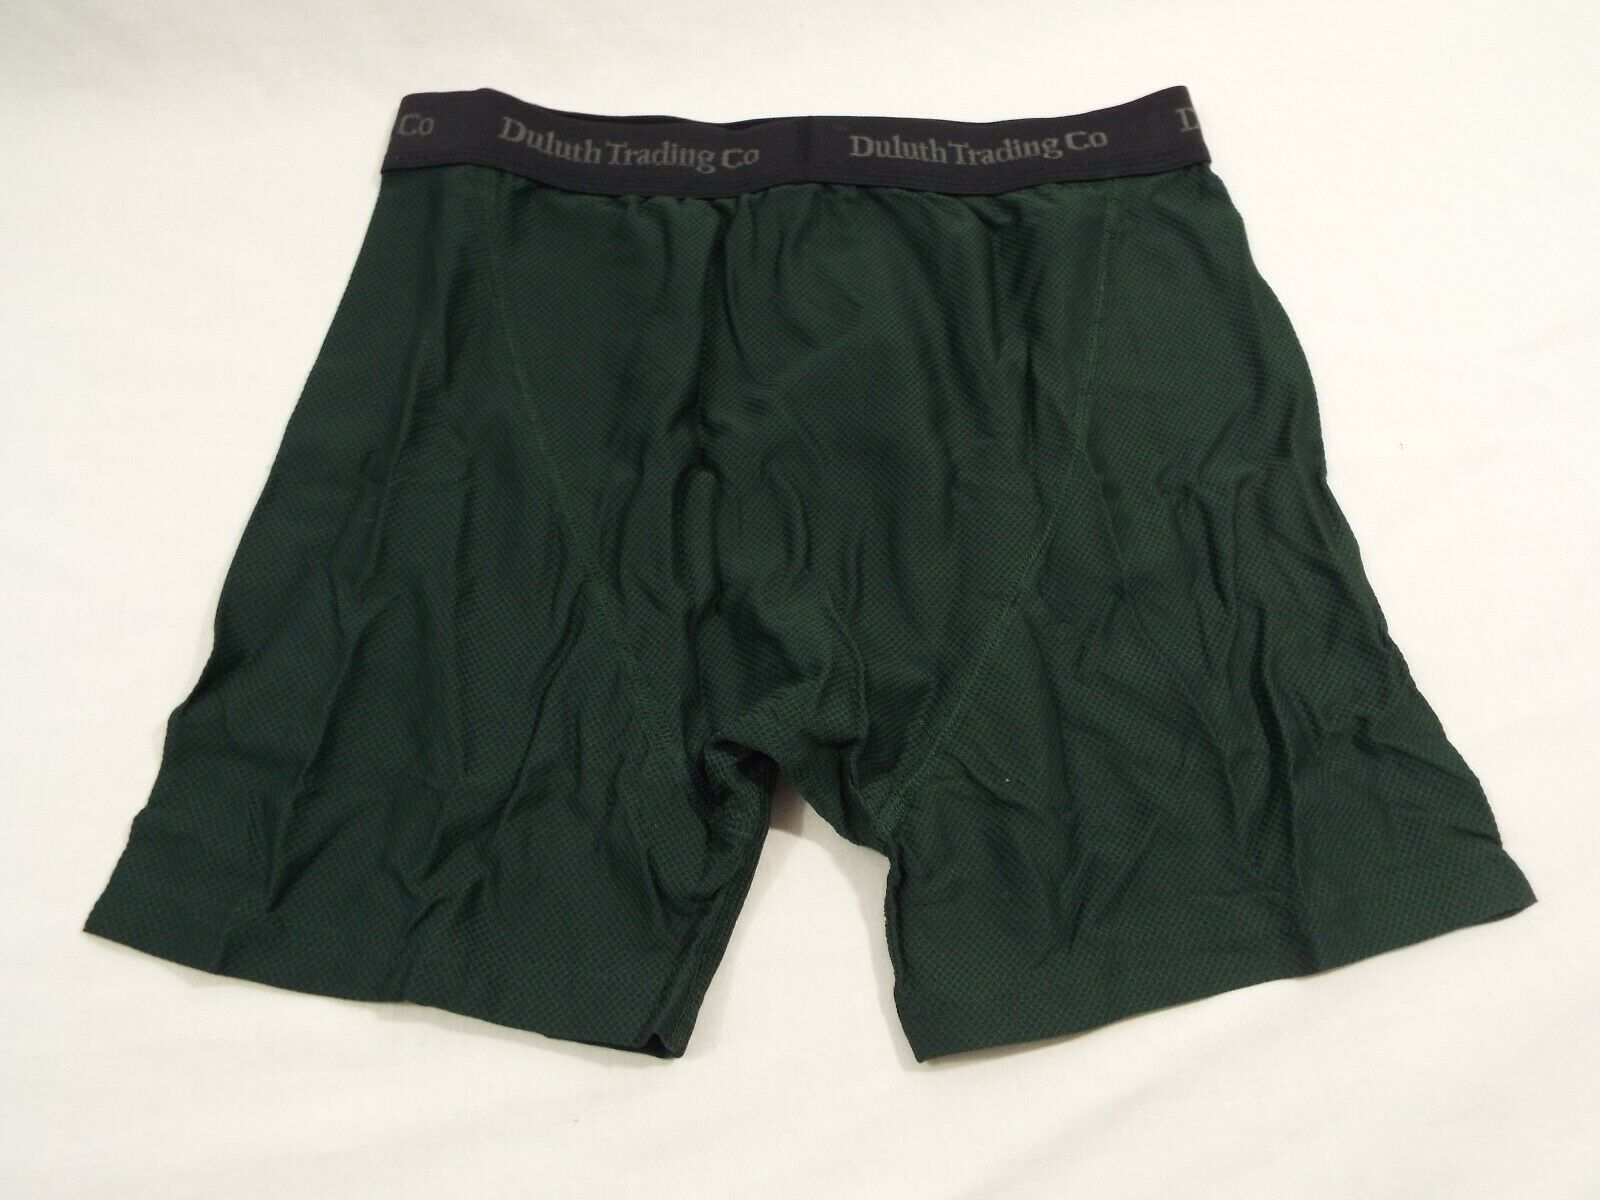 1 Pair Duluth Trading Co Buck Naked Performance Boxer